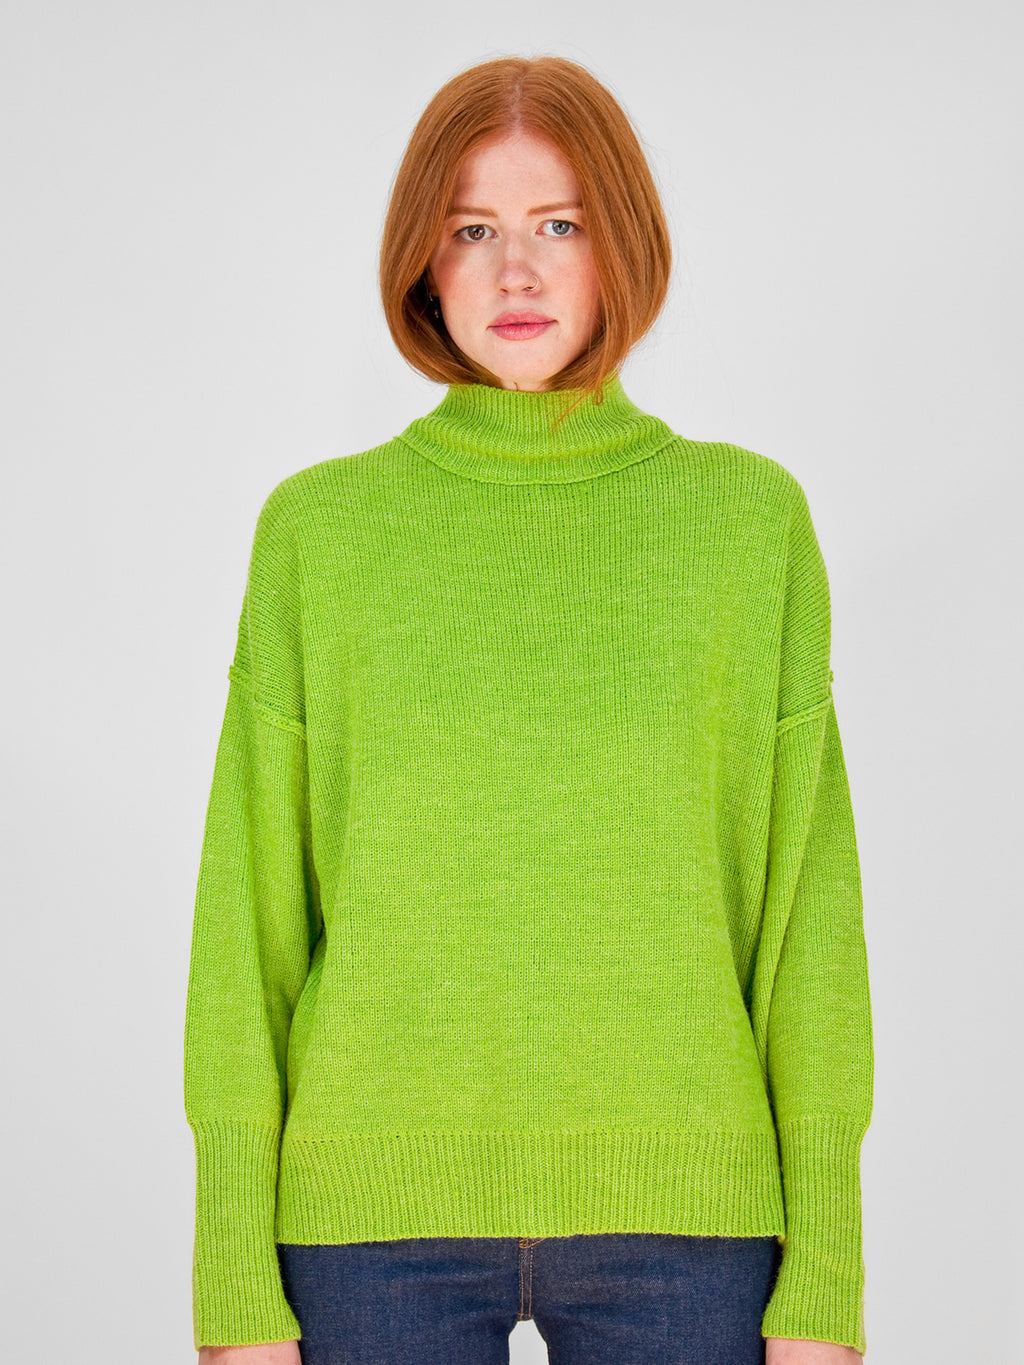 Hugs - Mock Neck Sweater / Spring Moss